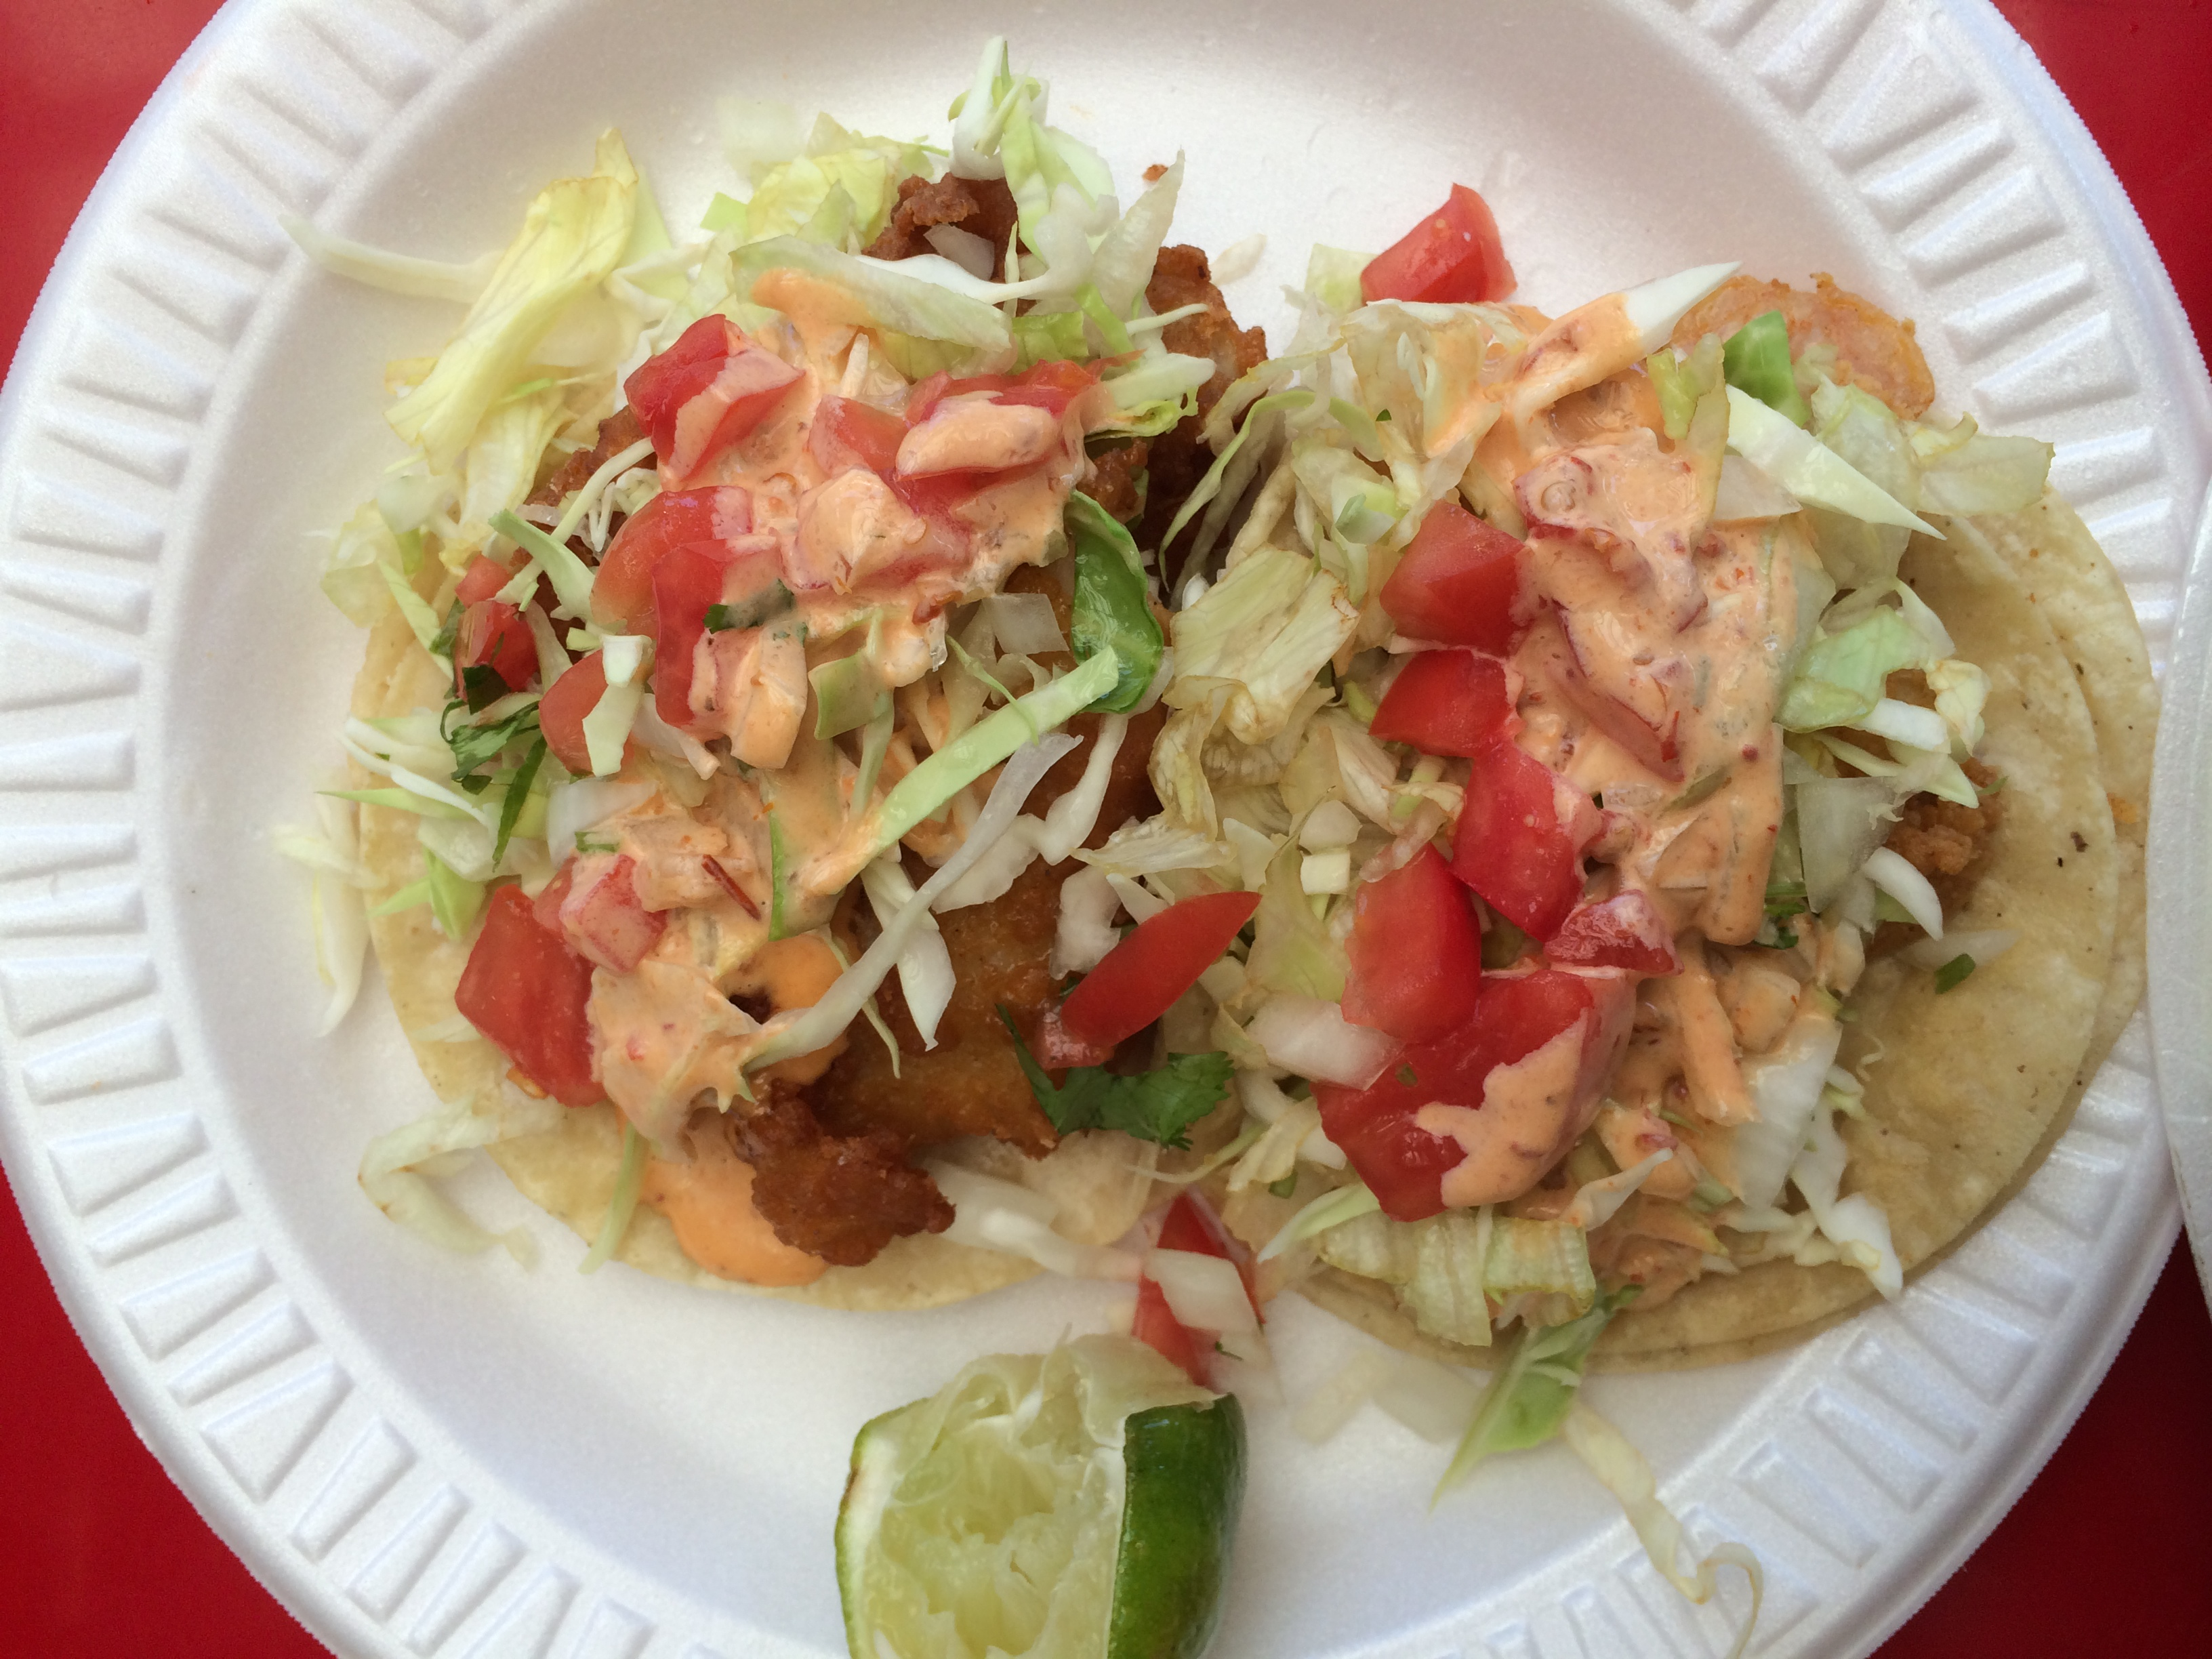 the fish tacos from Tacos Delta on W. Sunset Blvd.